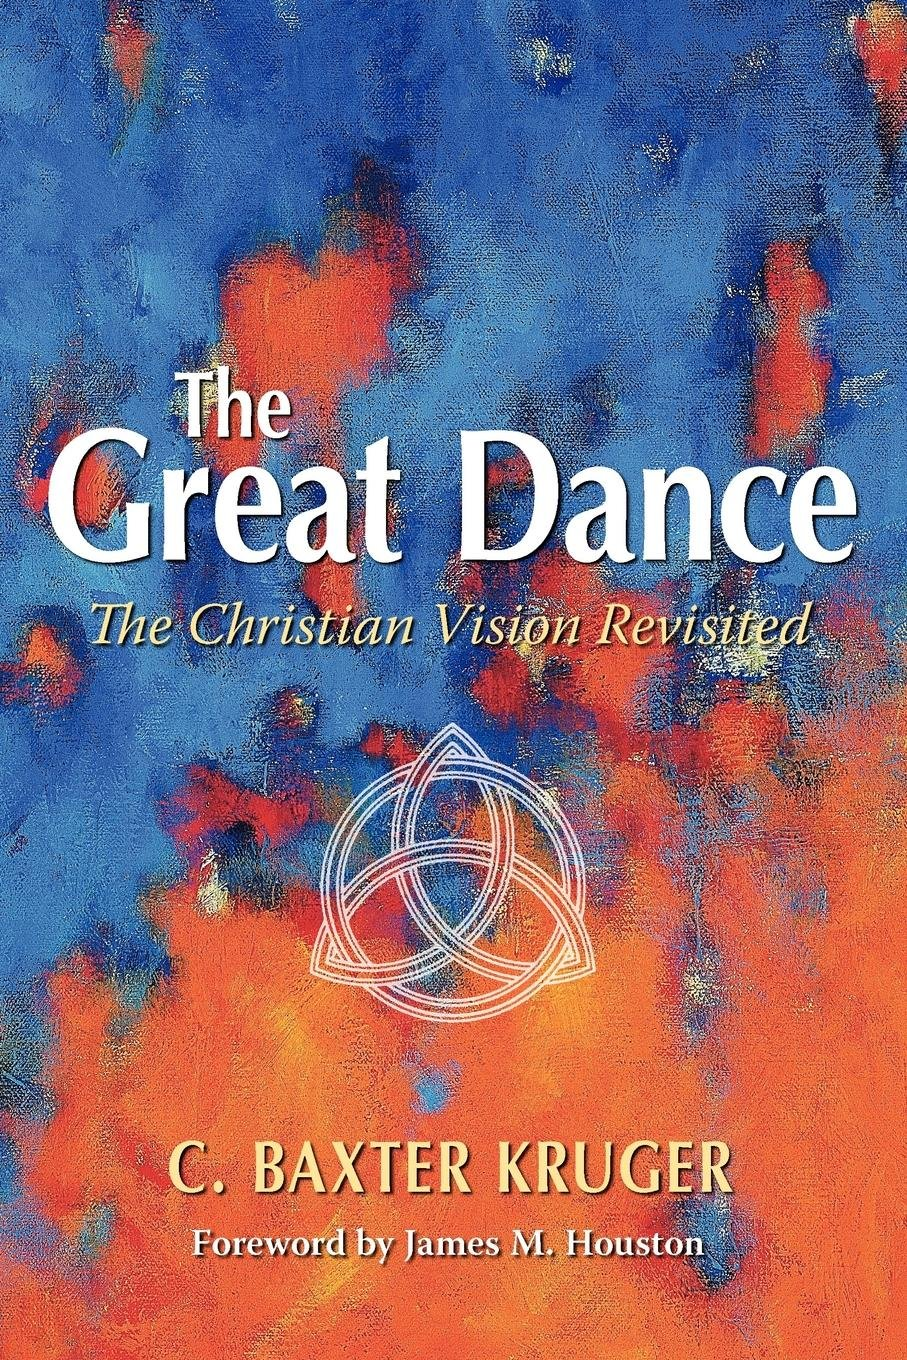 The Great Dance: The Christian Vision Revisited: Amazon.es: C. Baxter Kruger: Libros en idiomas extranjeros